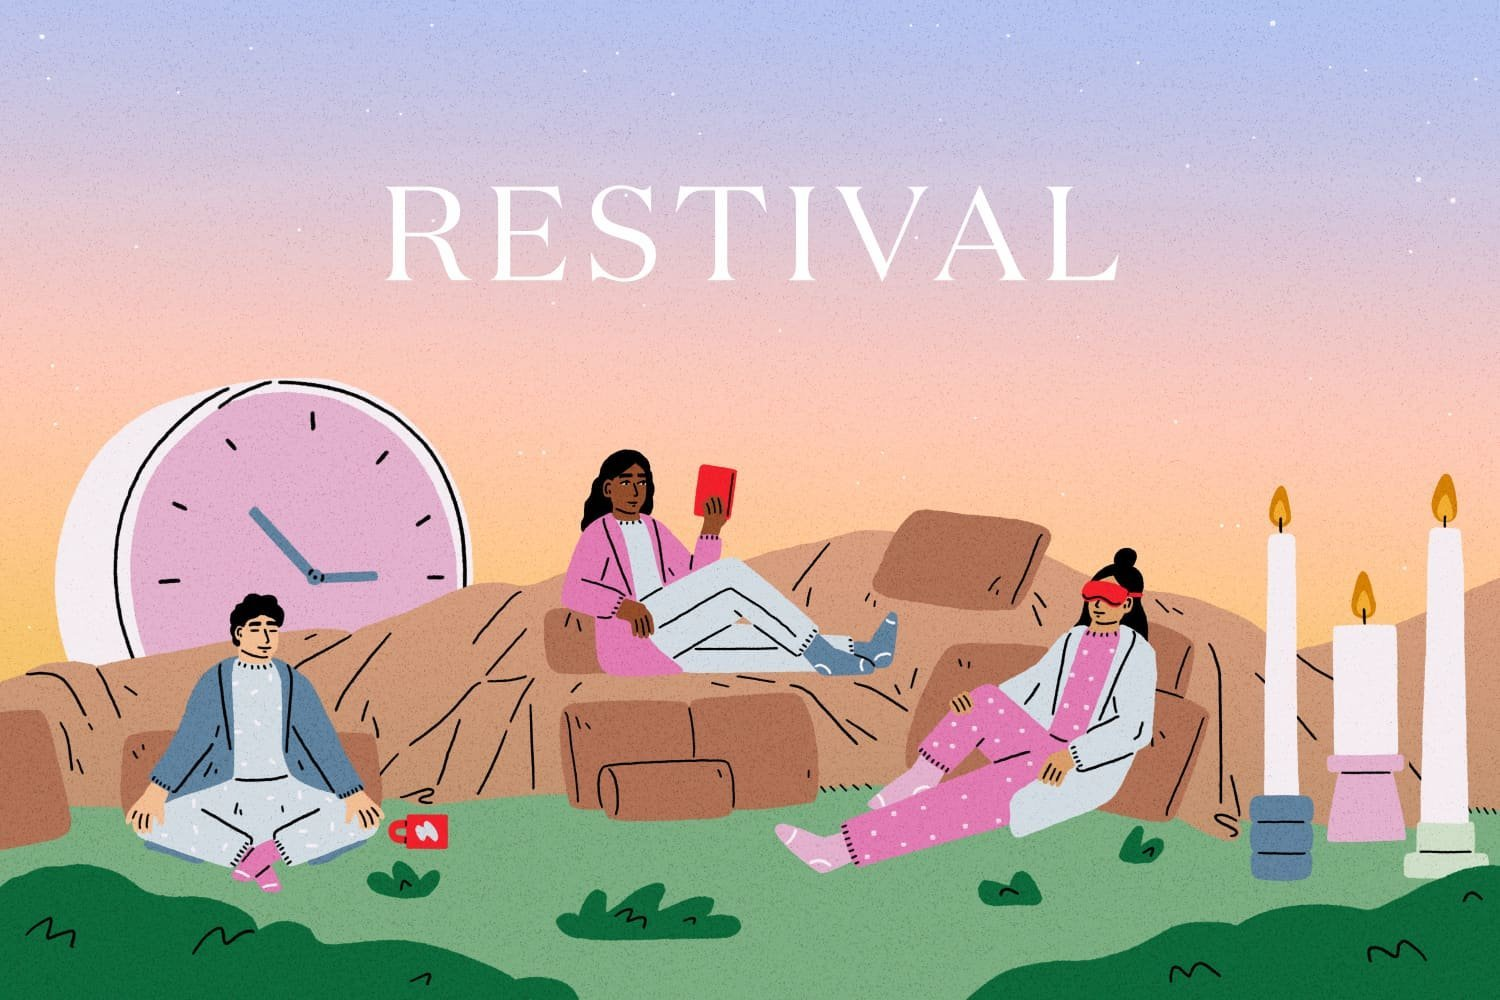 Welcome to Restival Season, Where Relaxing Is the Main Event